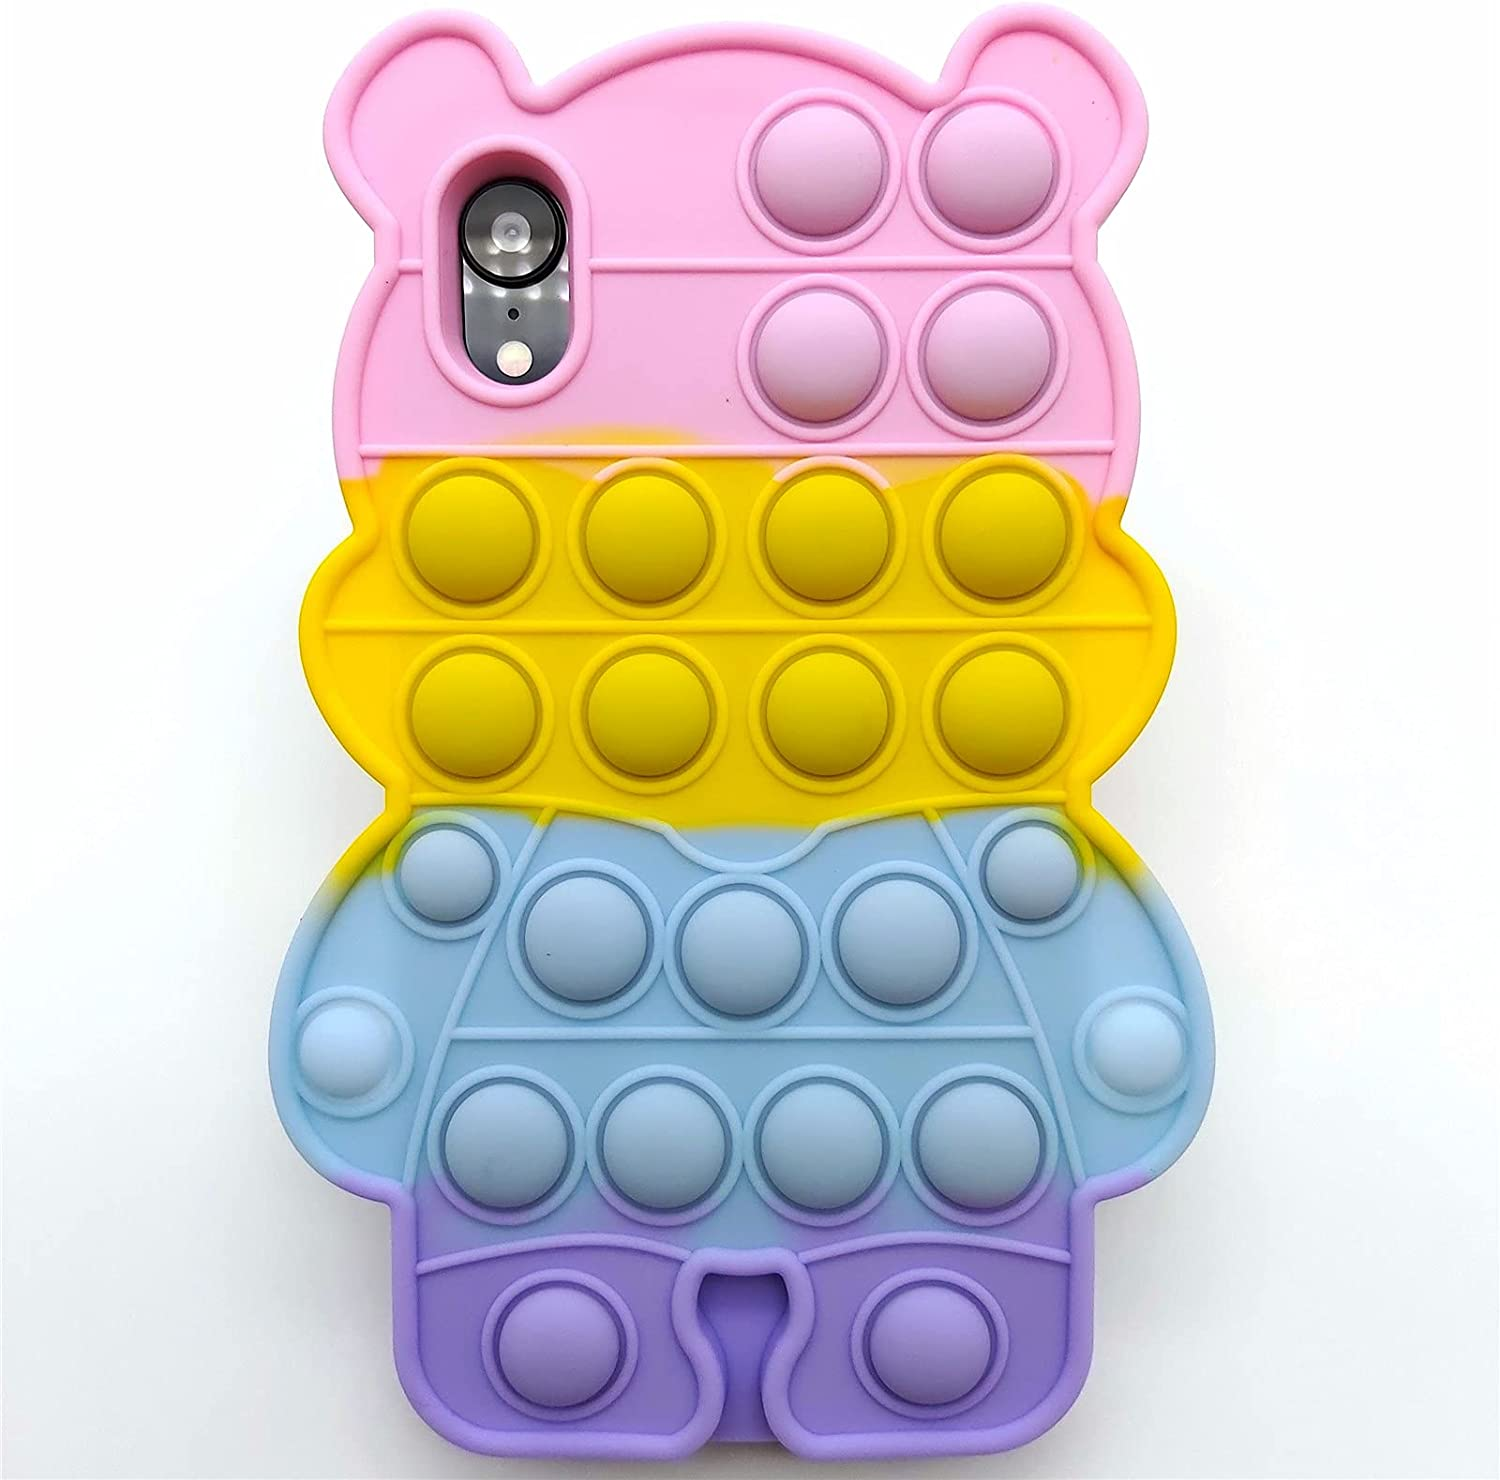 for iPhone XR Case Push Pop Bubbles iPhone XR Case Cute Bear Soft Silicone Fidget Toy Phone Case for iPhone XR Sensory Anxiety Relief Autism Logical Thinking Cover Teen Girls Women Boys Kids (XR)